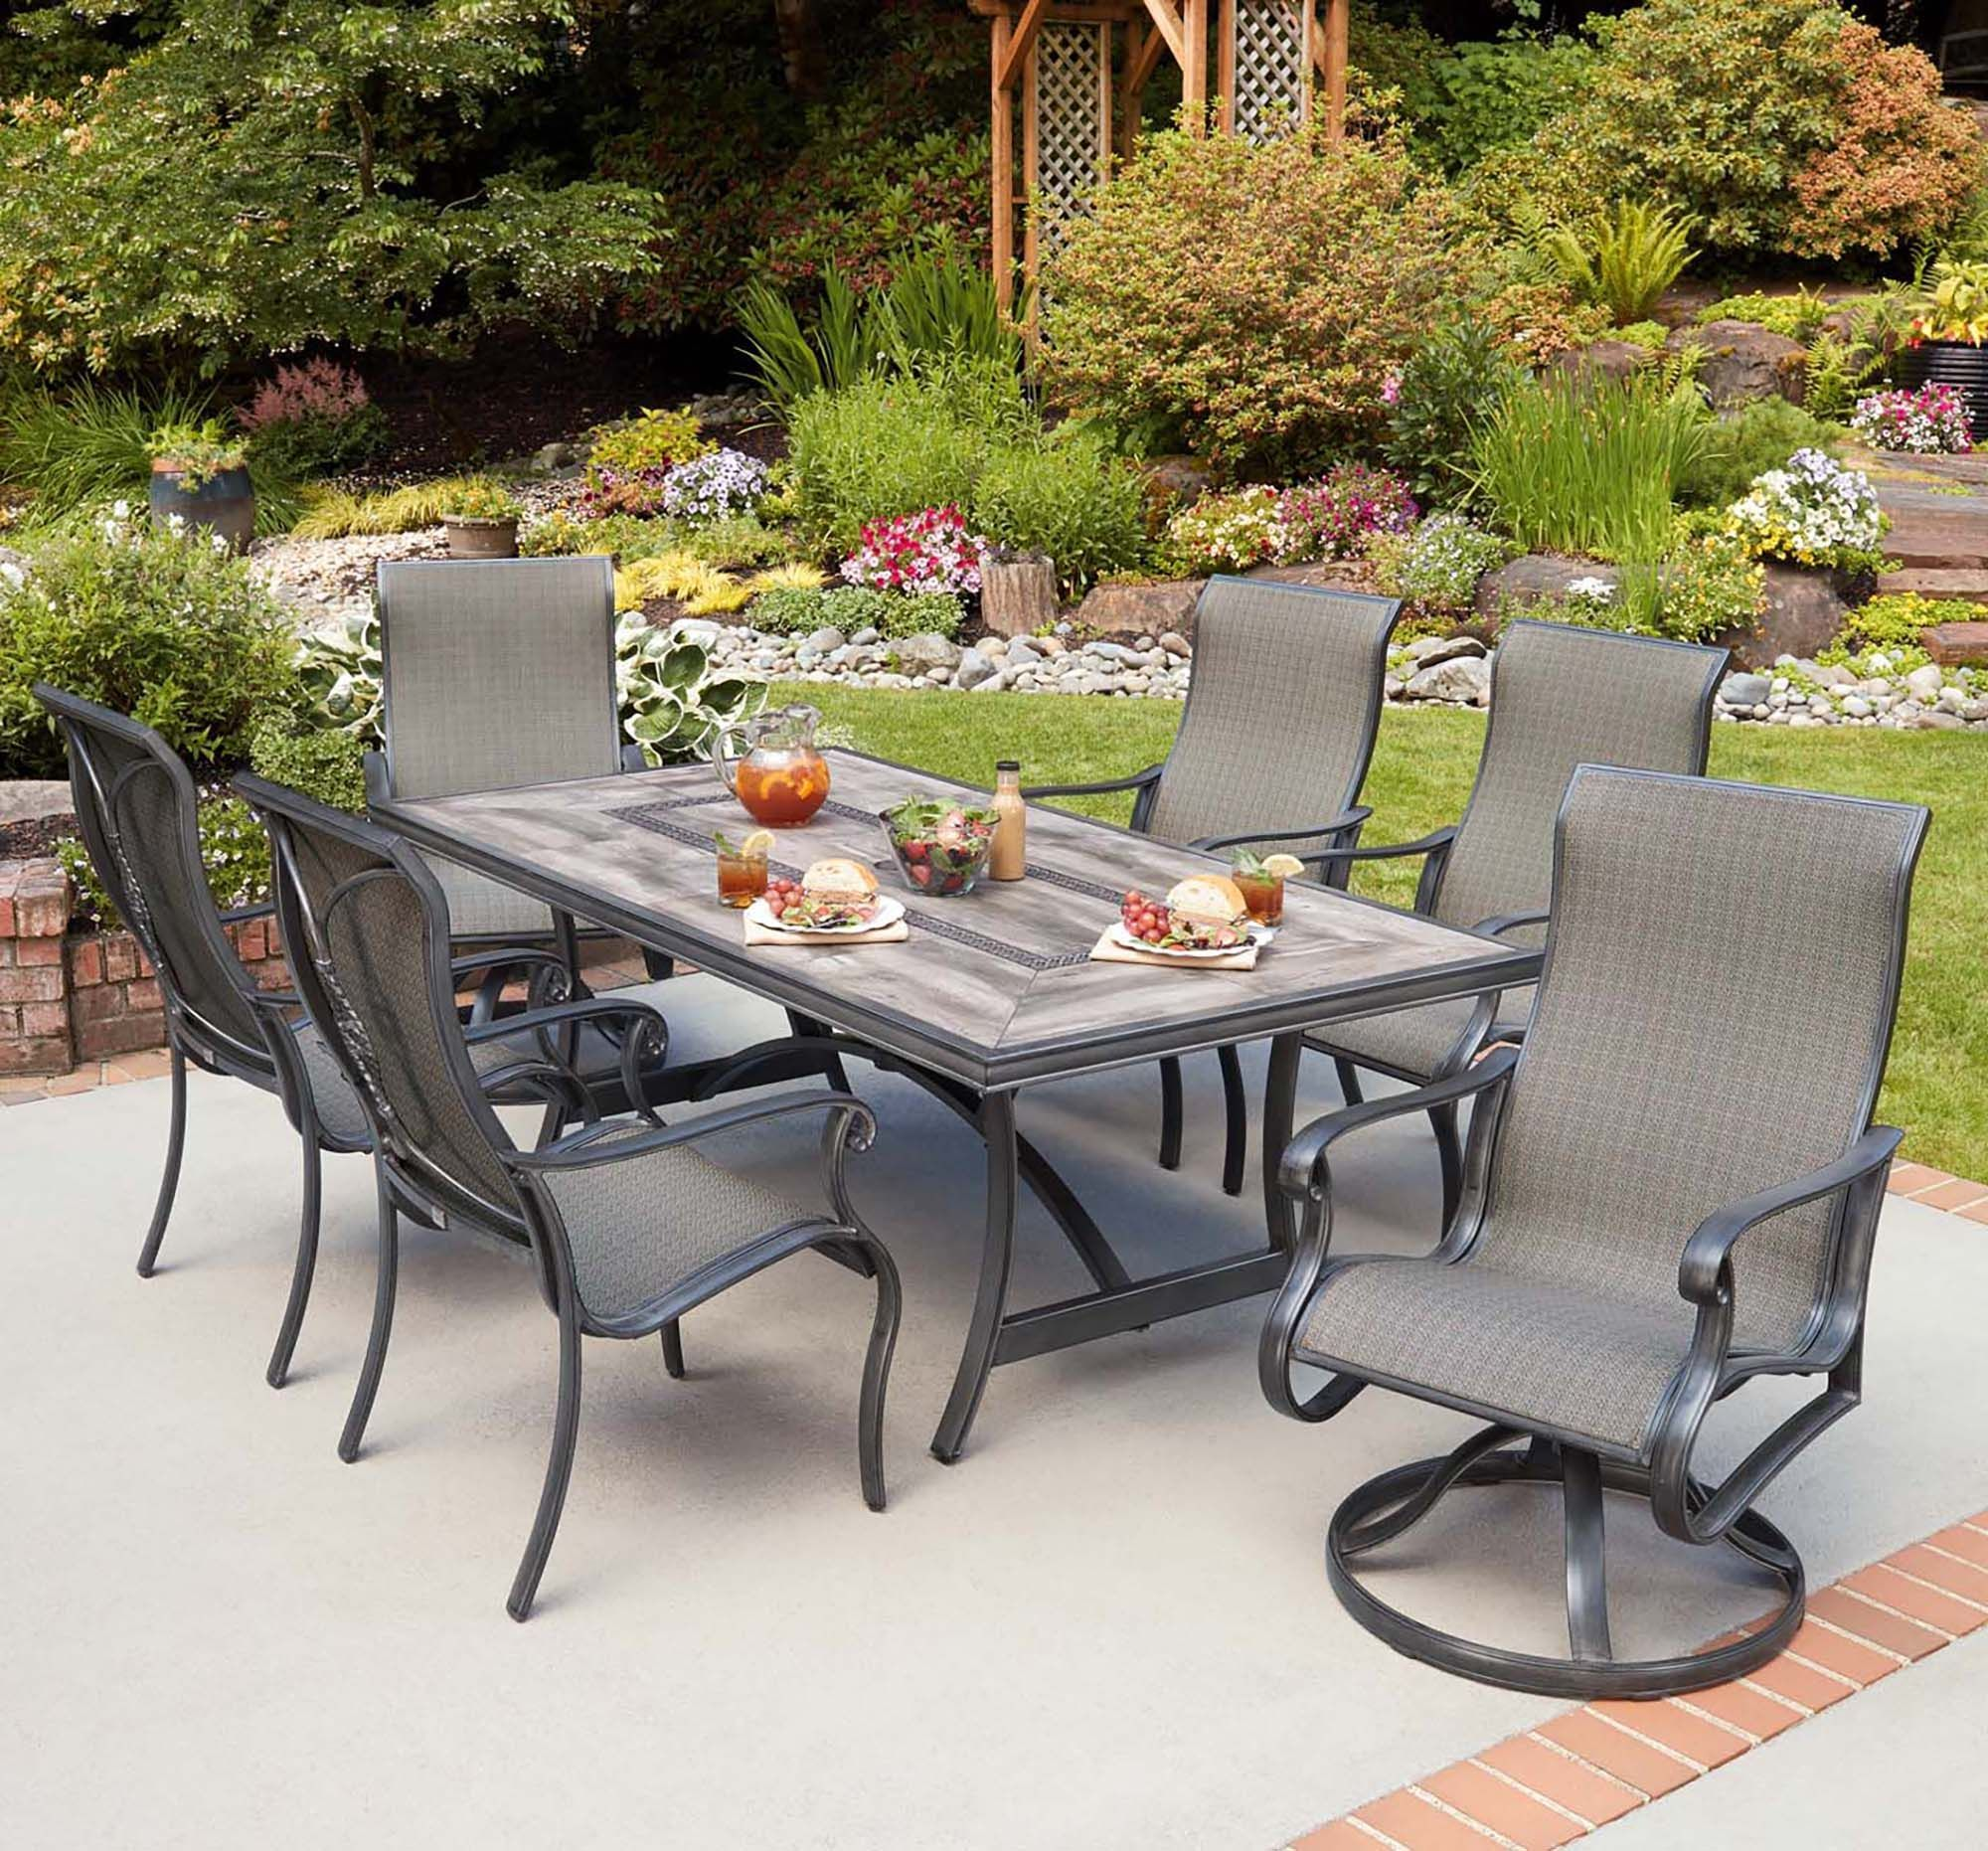 Campbell 7 Piece Sling Dining Set Costco Patio Furniture Patio Dining Set Stationary Chairs